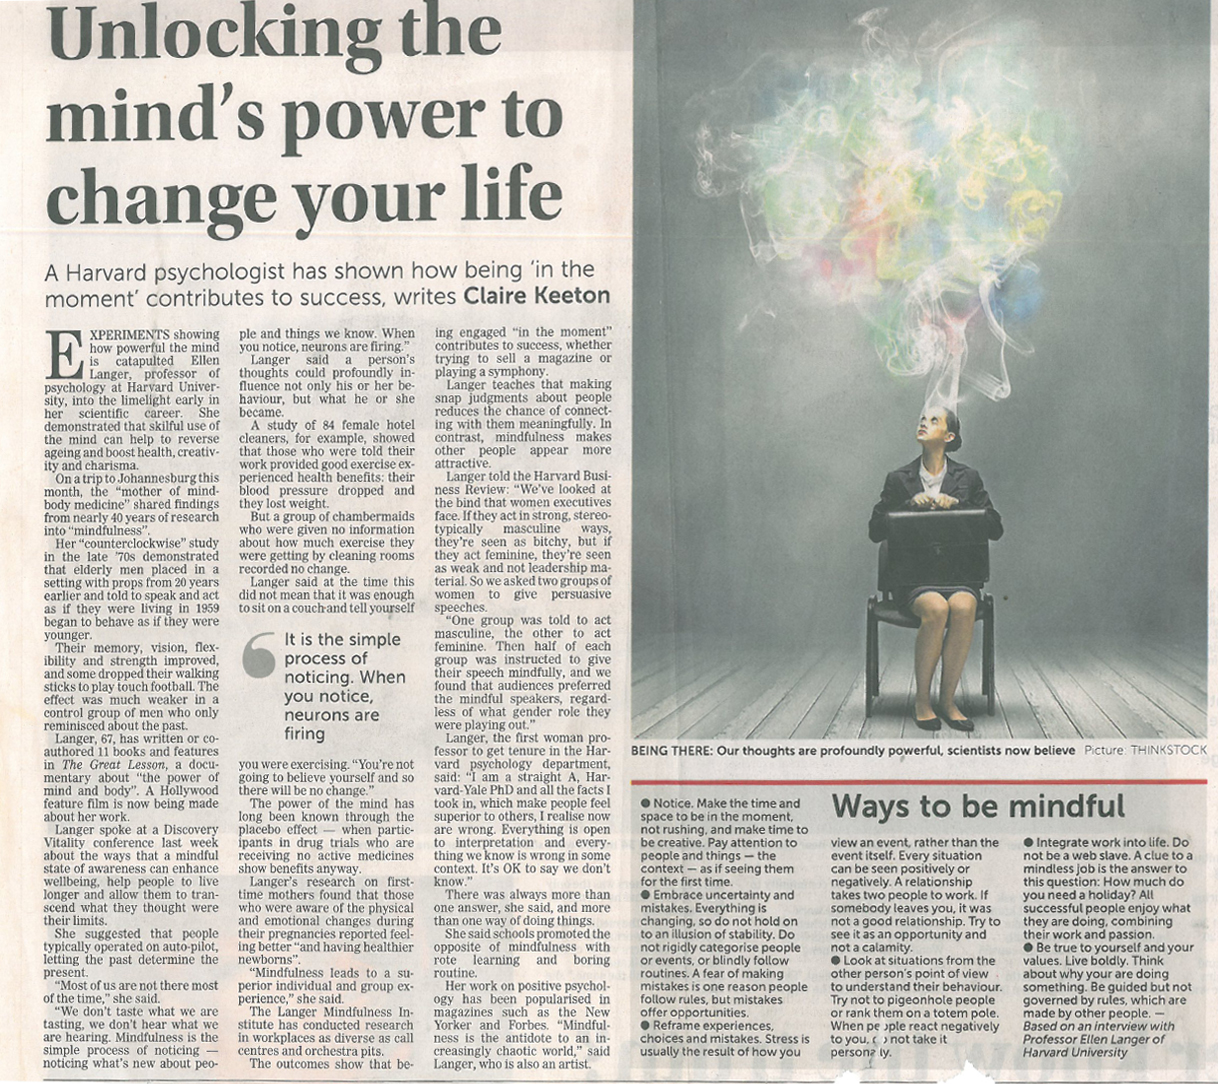 unlocking-the-minds-power-to-change-your-life-business-times-article-a